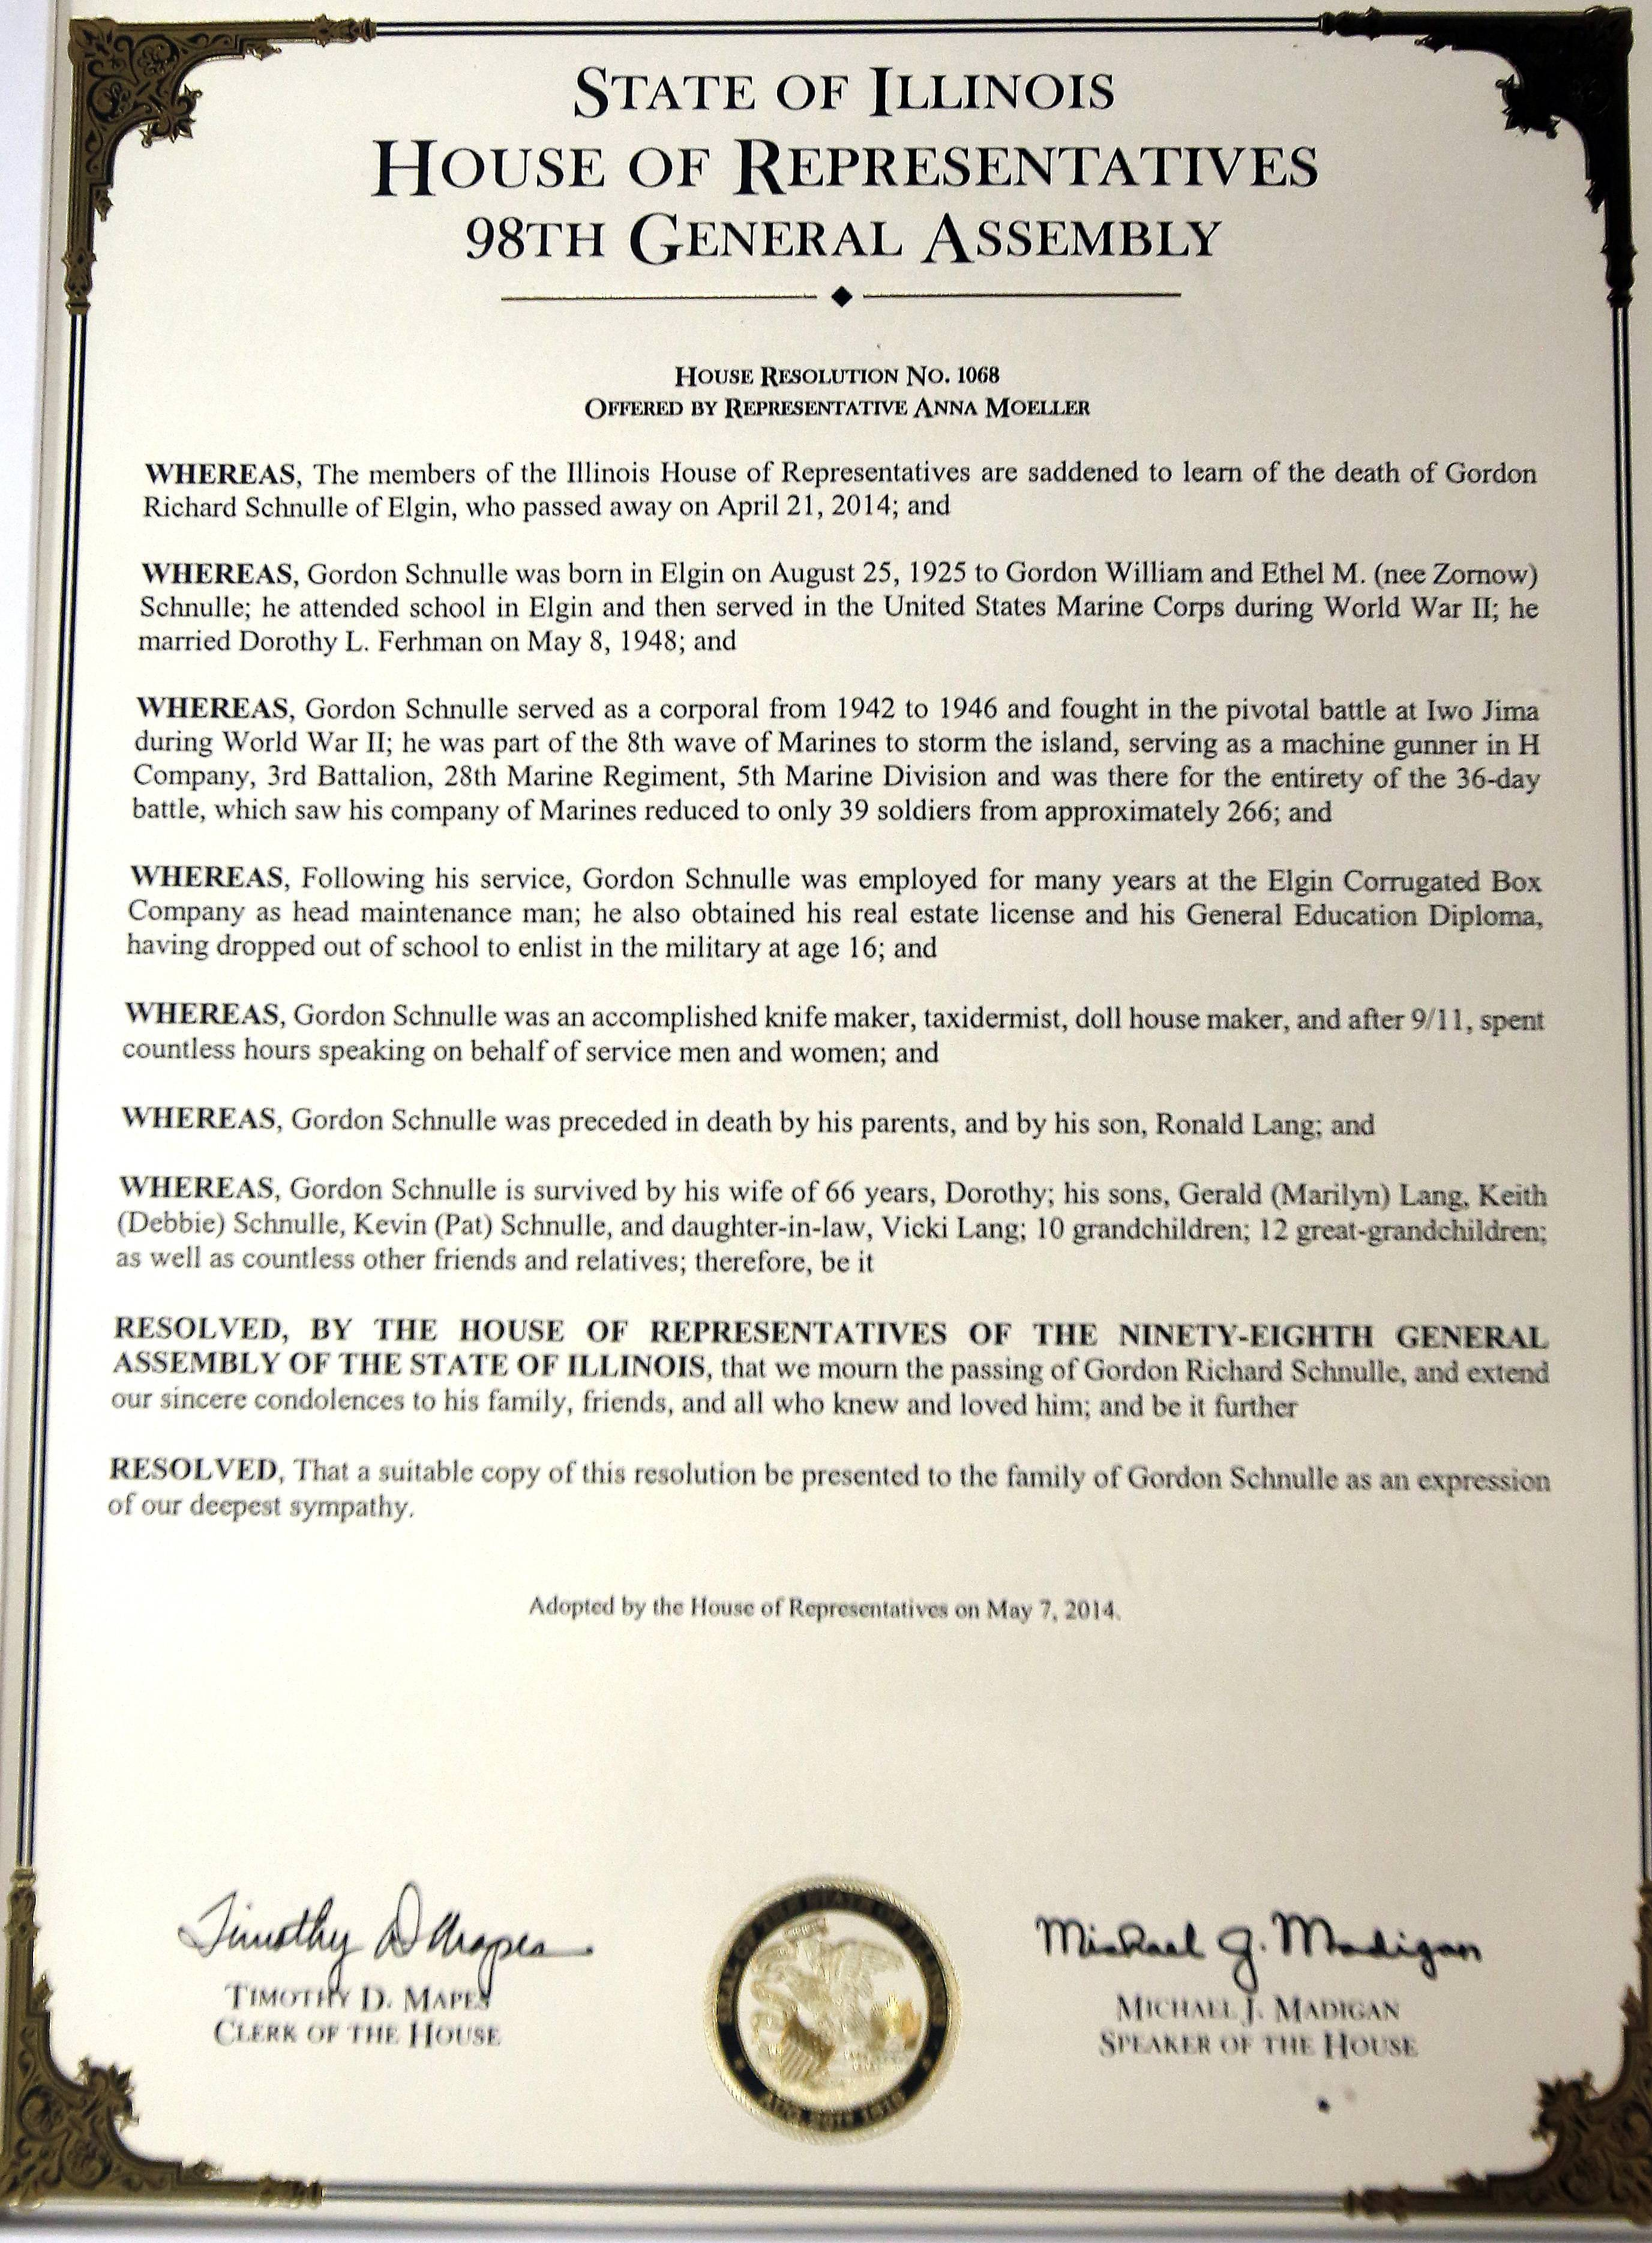 State Rep. Anna Moeller and State Sen. Michael Noland Wednesday presented Gordon Schnulle's widow, Dorothy, with this joint resolution from both Illinois Houses honoring Schnulle's life.